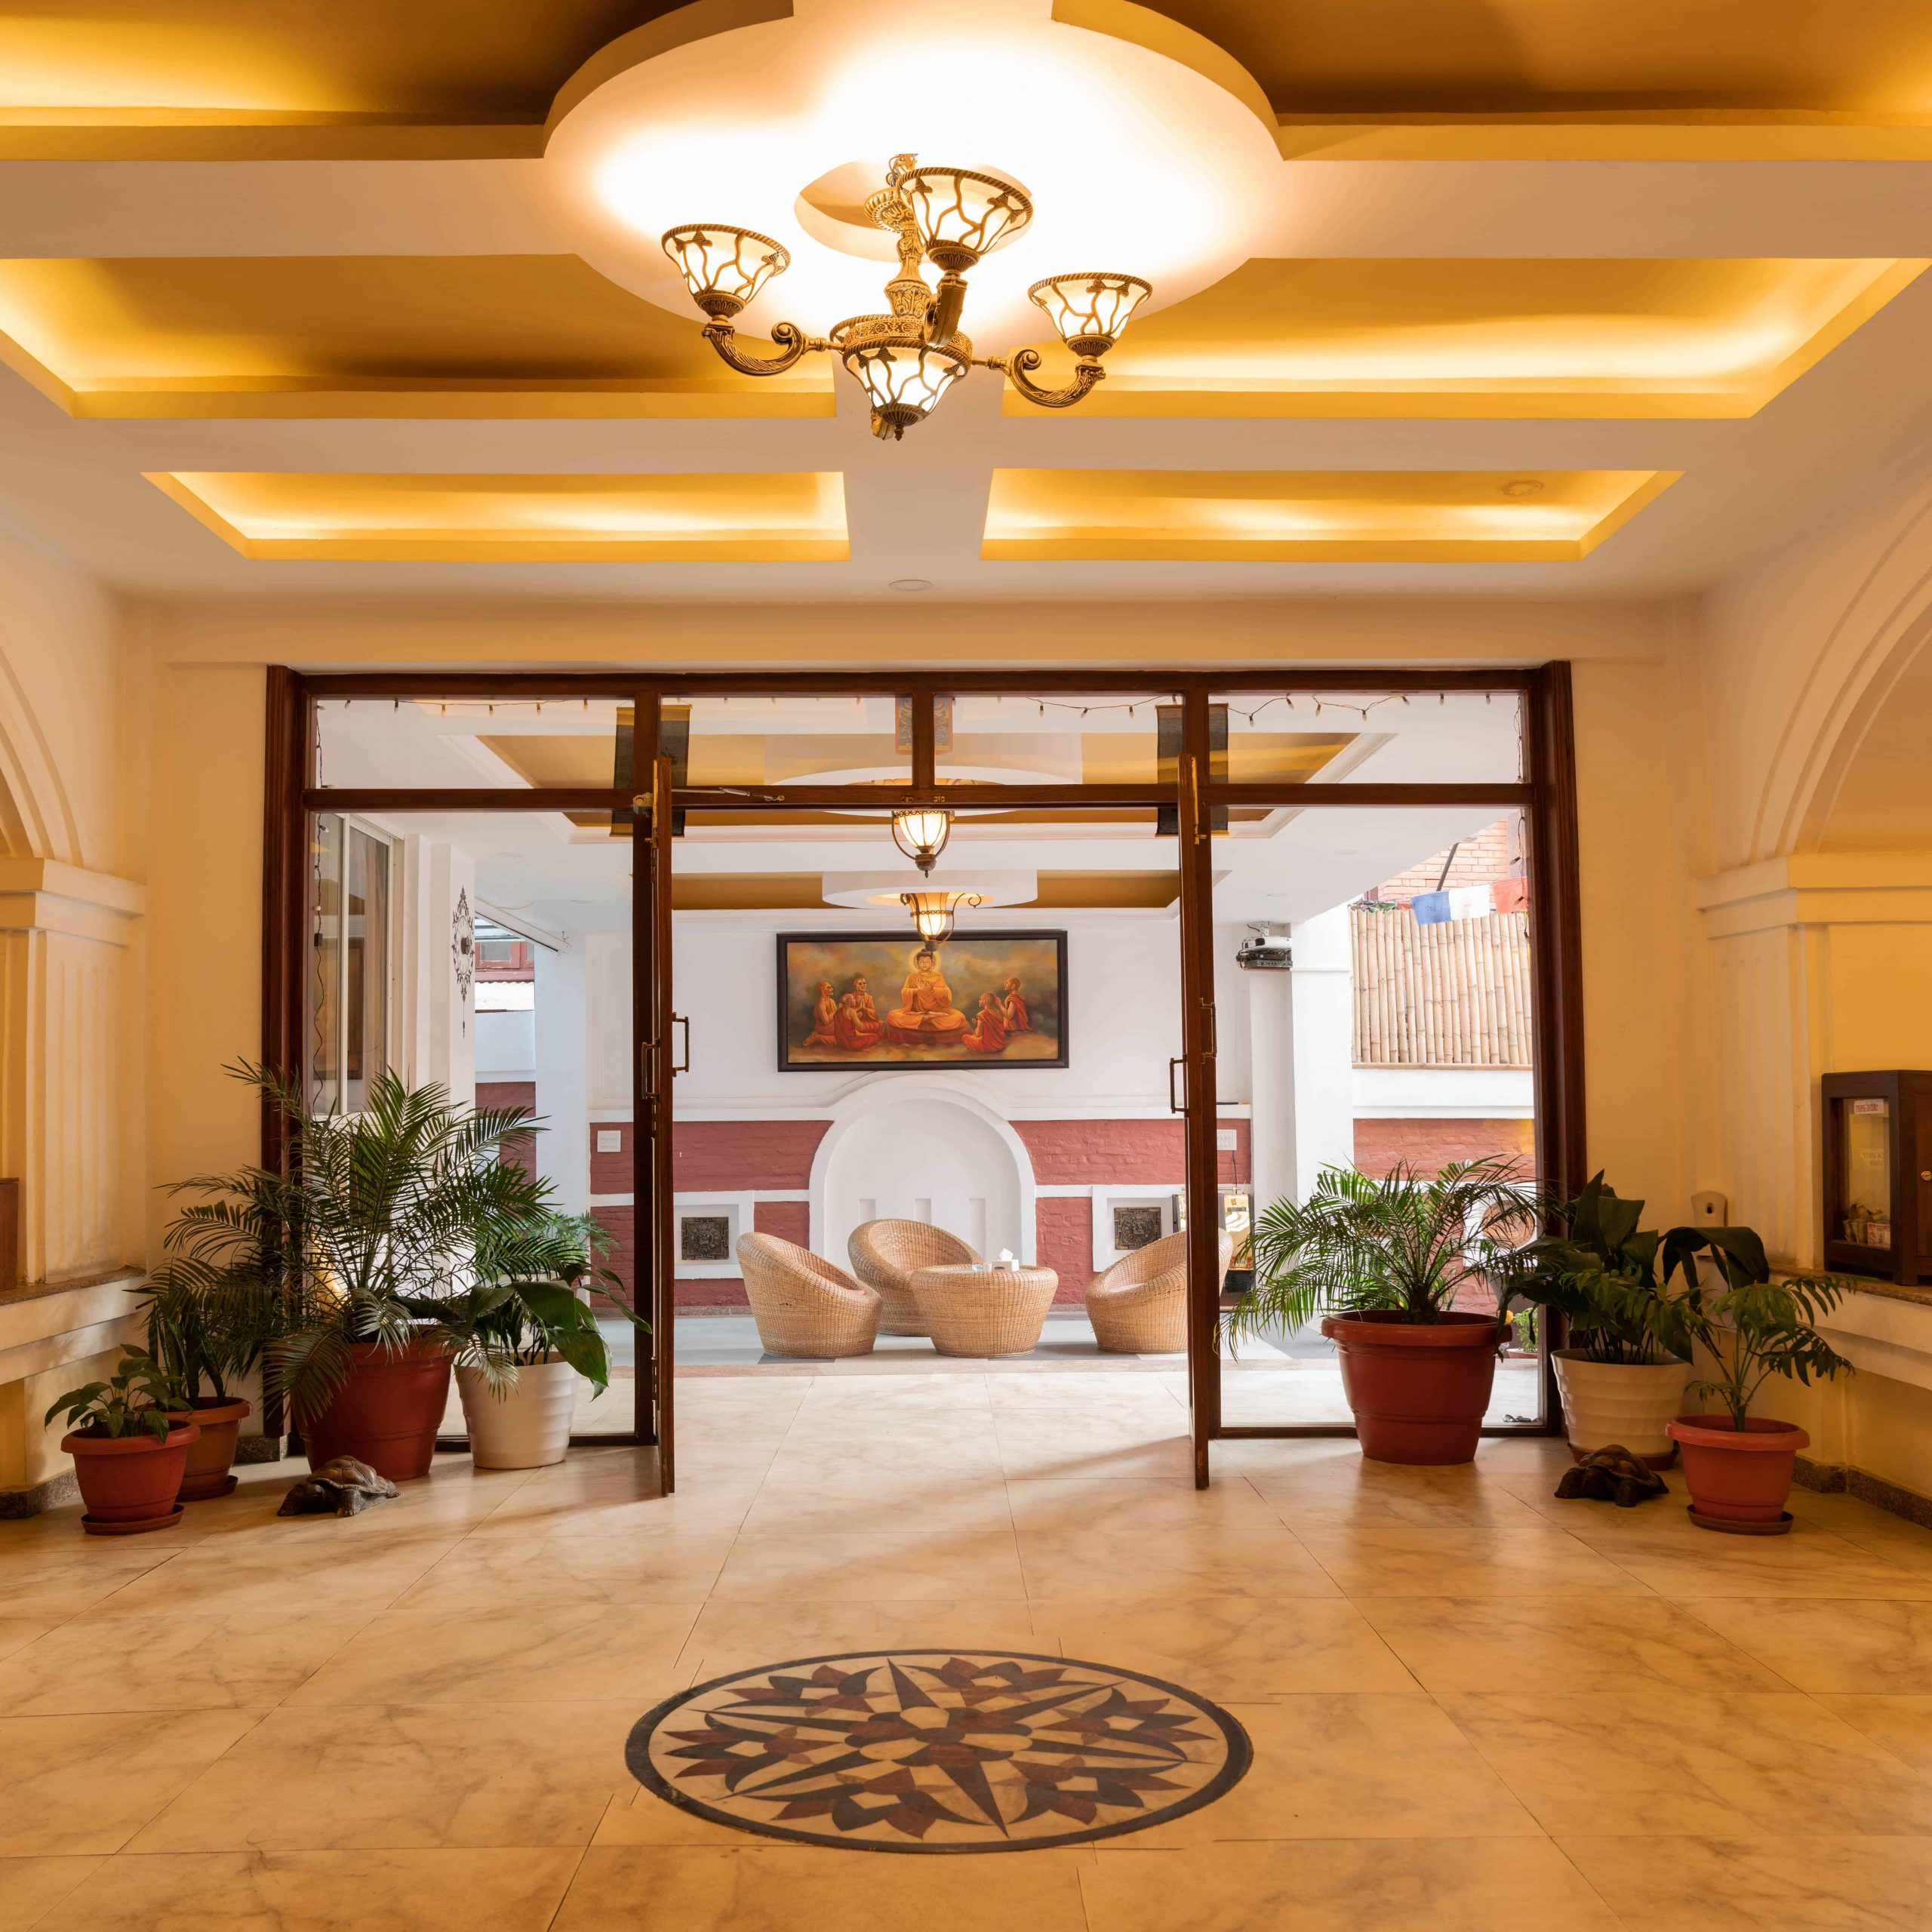 What exactly is a Boutique Hotel? Boutique Hotel in Thamel: Dom Himalaya